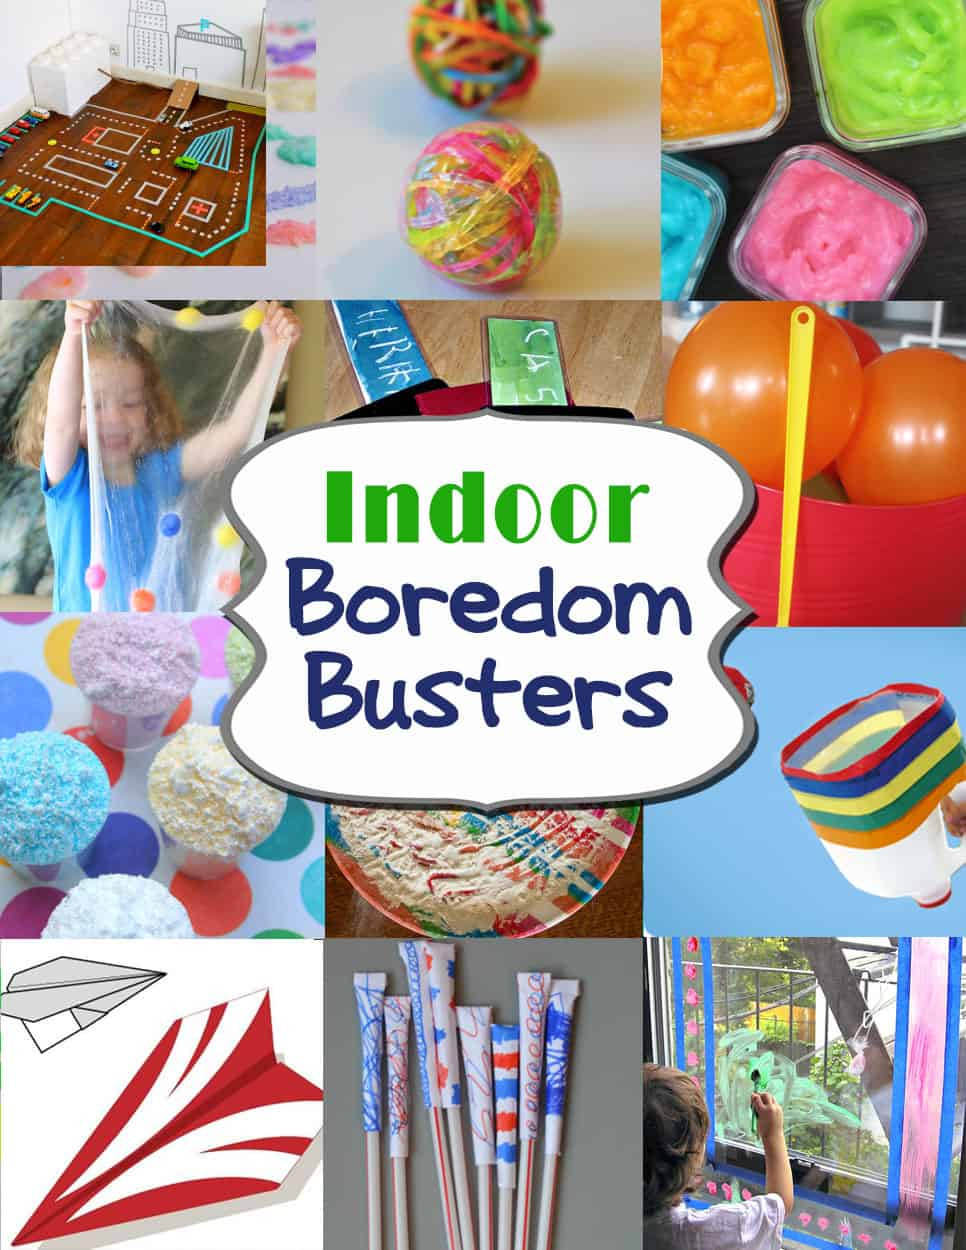 Projects For Kids At Home  Indoor Boredom Busters